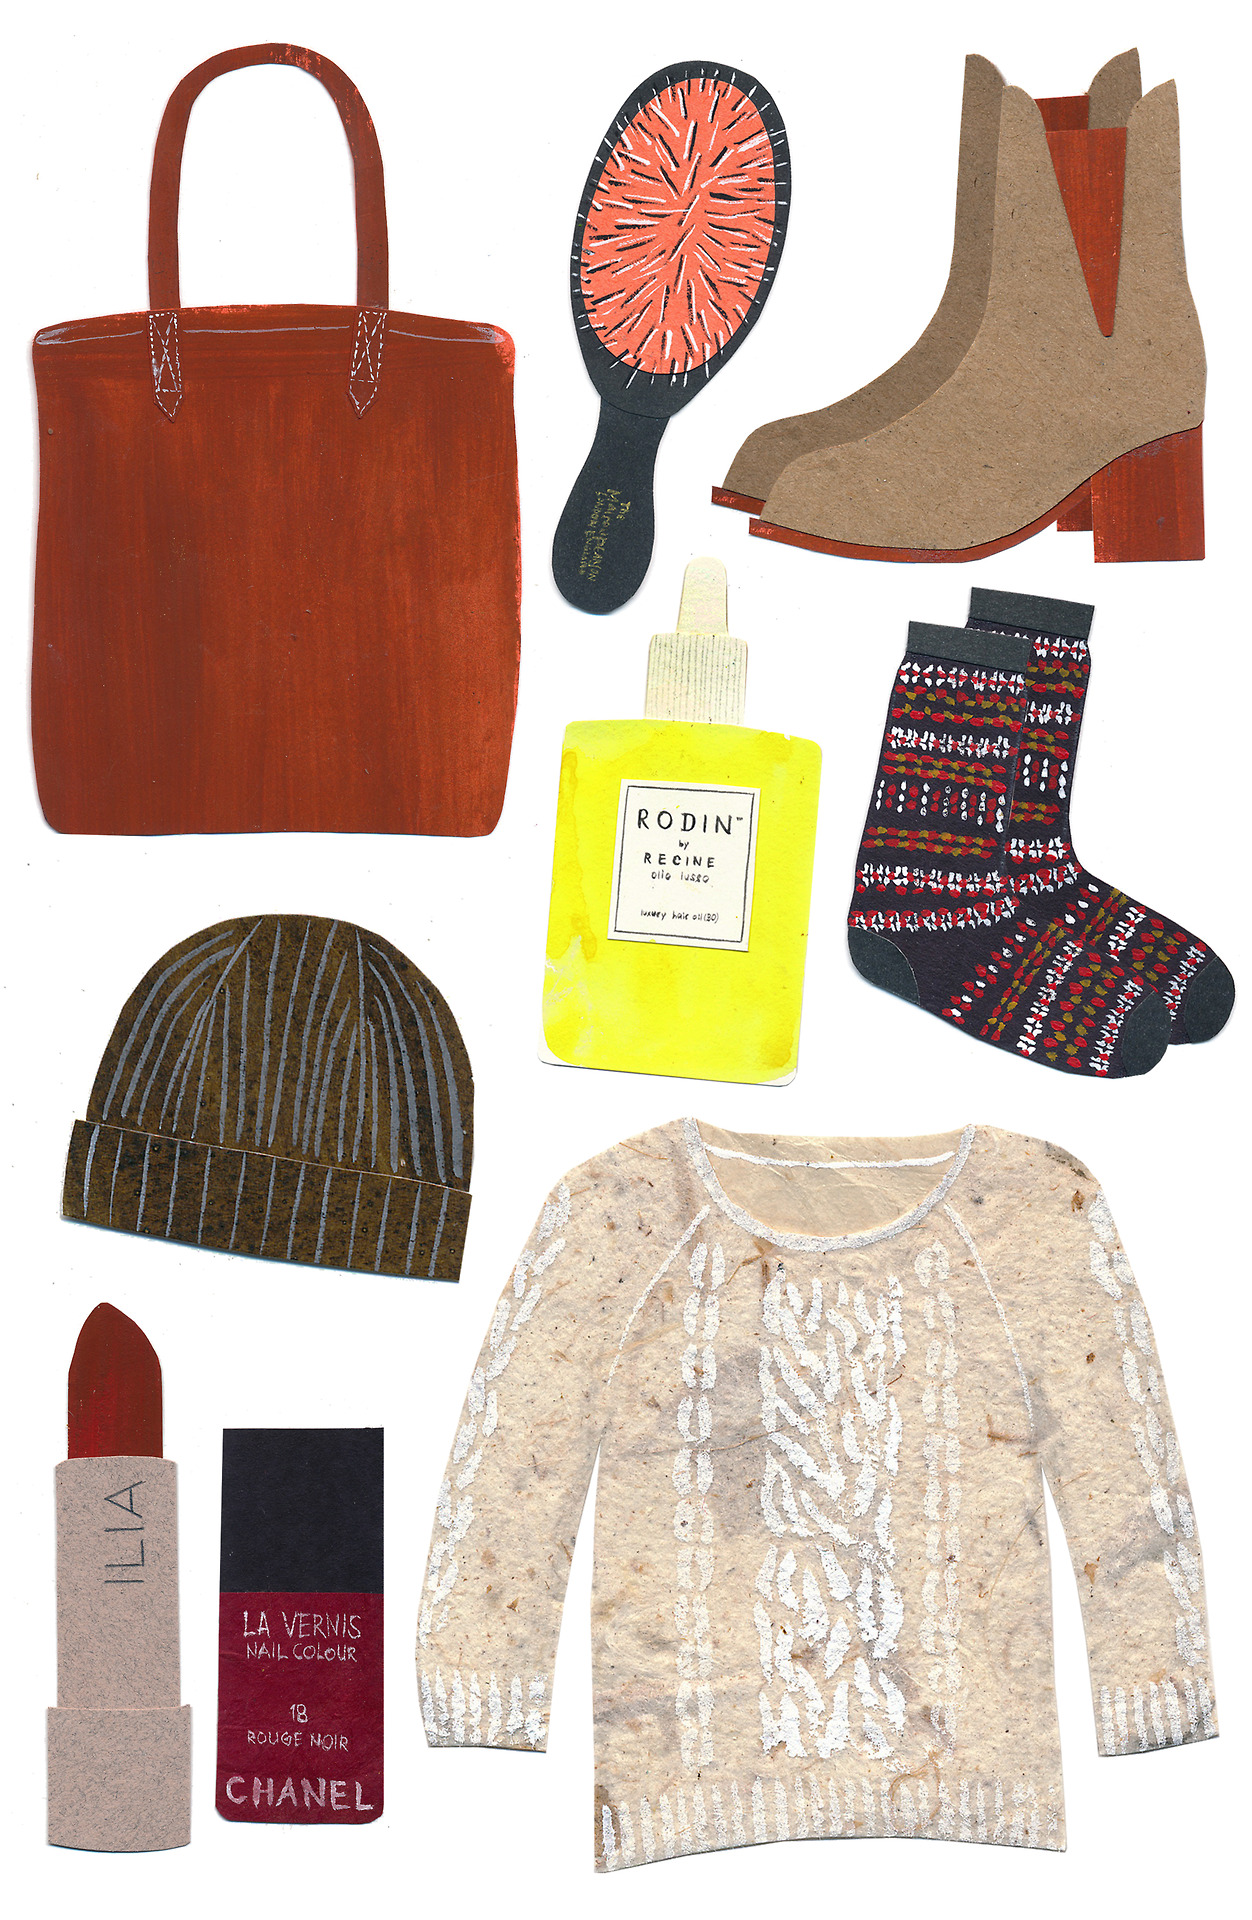 My fall wish list is here! So excited for this season. xo   (Left to right)    Madewell Transport Tote ,  Mason Pearson Hair Brush ,  Zara Boots ,  Rodin Hair Oil ,  Bleuforet Wool Socks ,  Steven Alan Beanie ,  ILIA lipstick ,  Chanel Rouge Noir ,  Nili Lotan Cable Raglan Sweater    In case you missed my summer wish list,  here  it is.